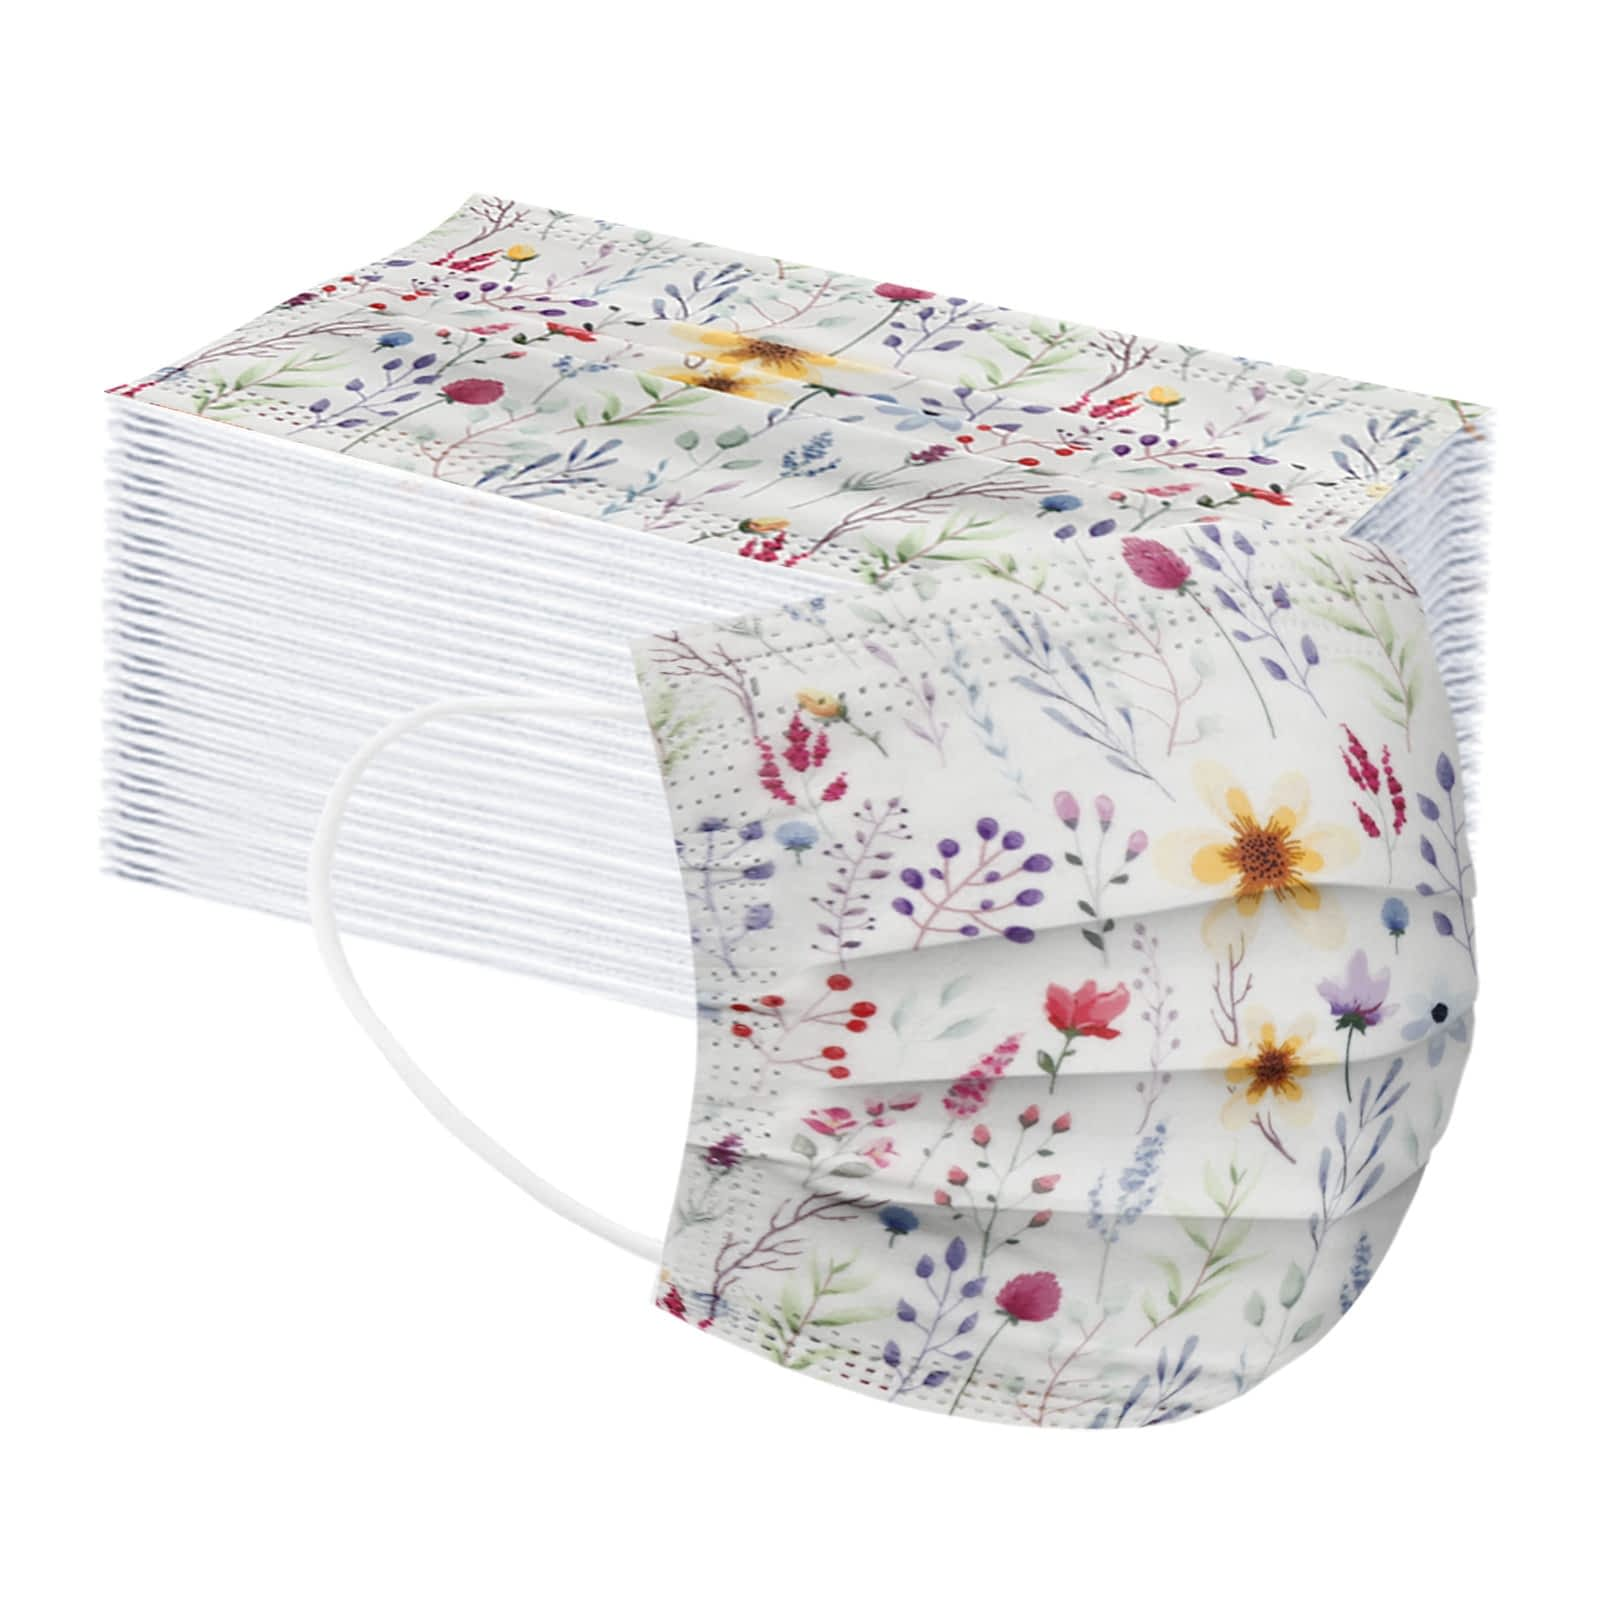 10-20-30-40-50-100PCS-Adult-Mask-Disposable-Face-Mask-Flower-Print-Women-Breathable-Mouth.jpg